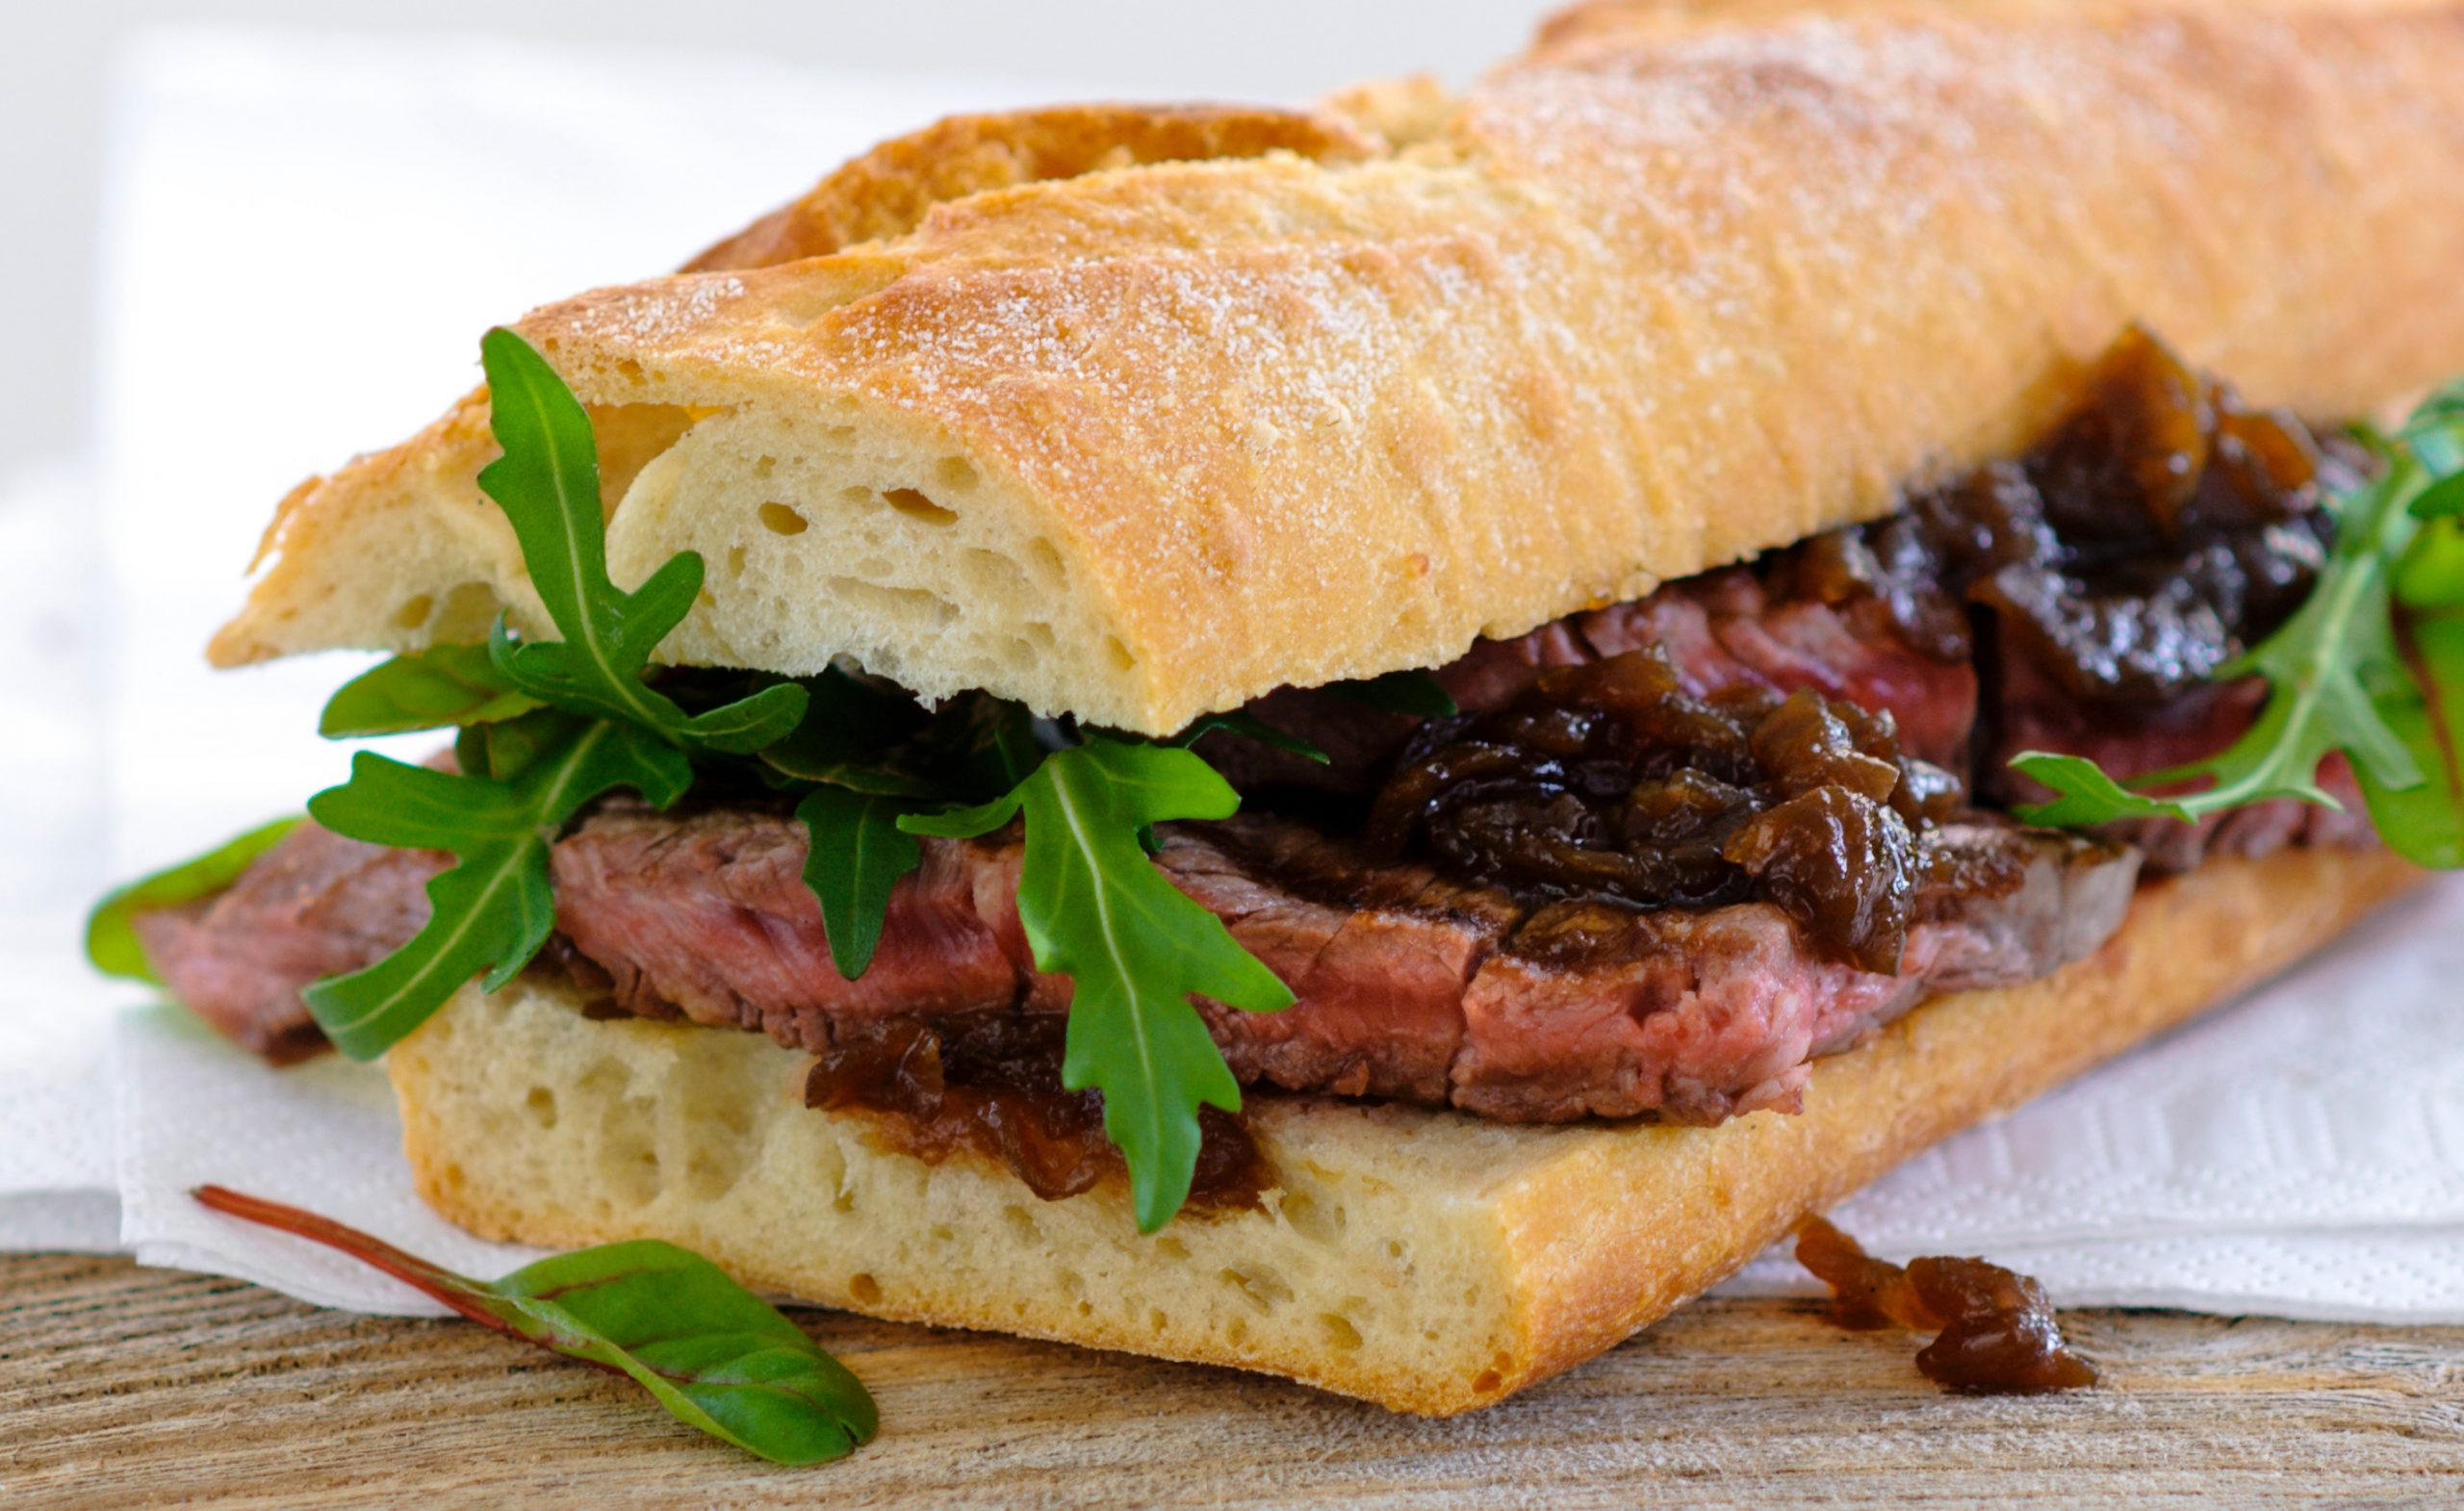 Steak Baguette with Caramelised Red Onion Relish recipe